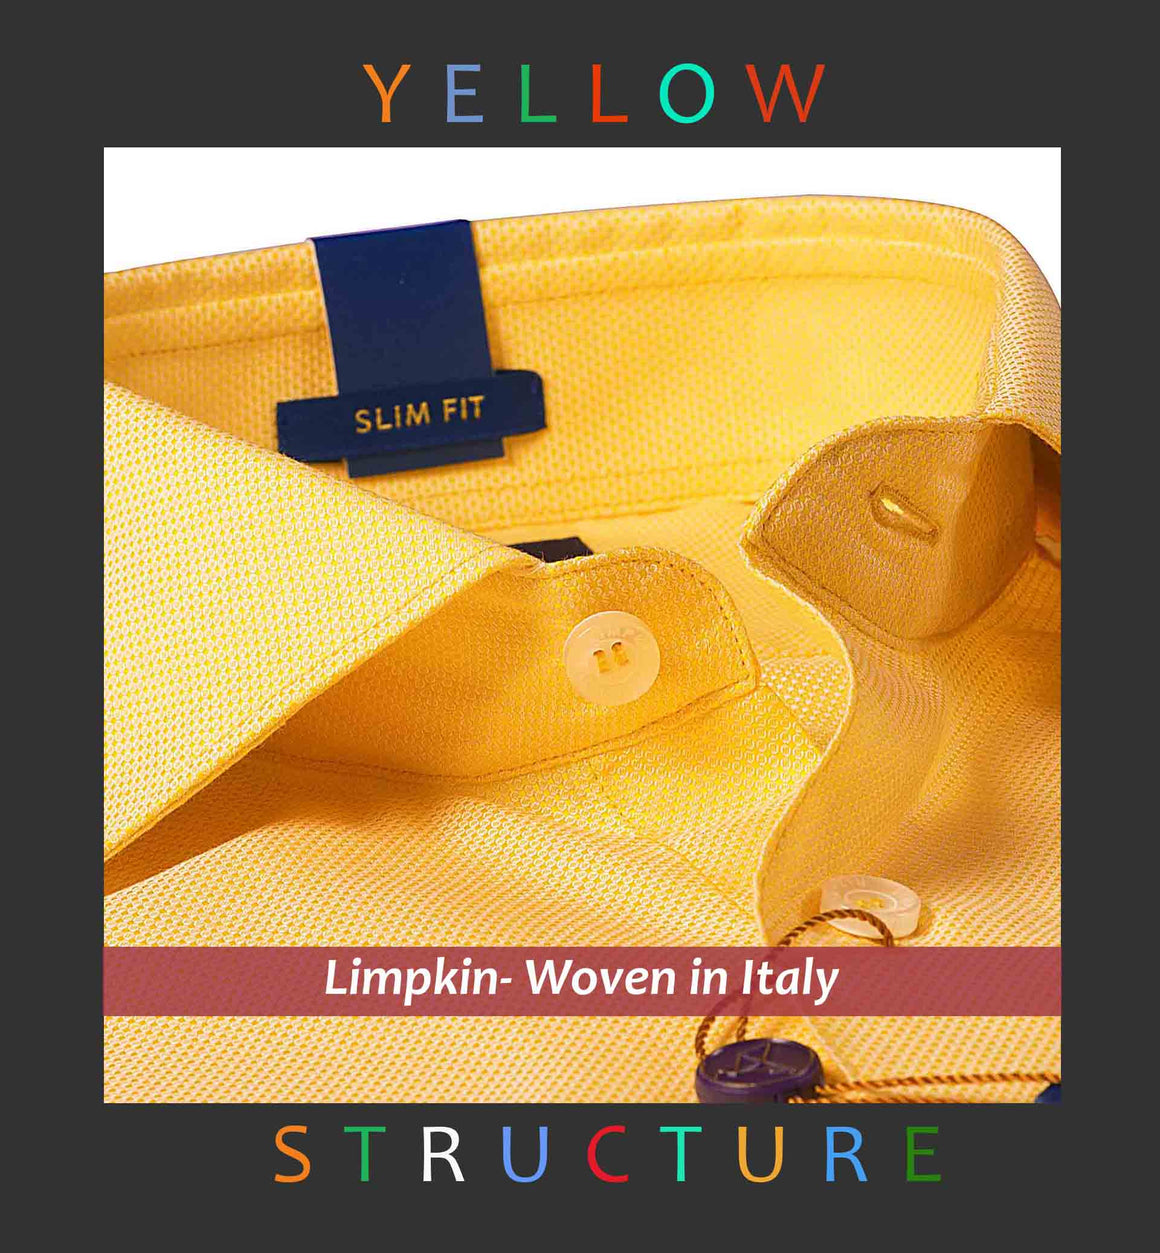 HAMBURG- YELLOW SOLID STRUCTURE- Delivery from 20th Dec